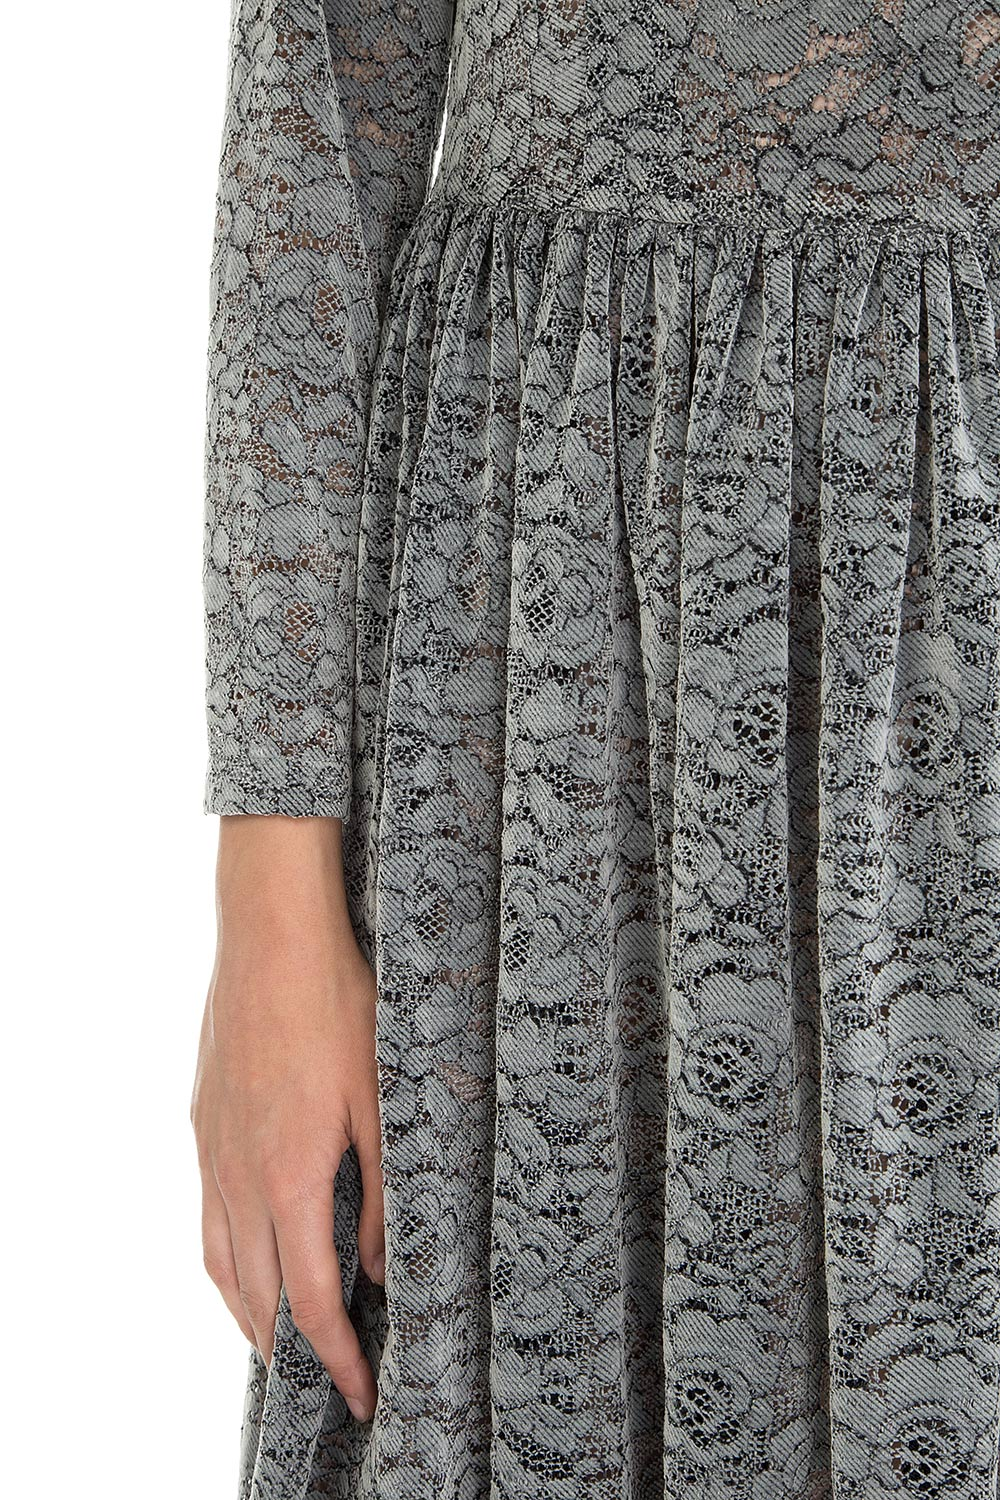 Gray lace dress